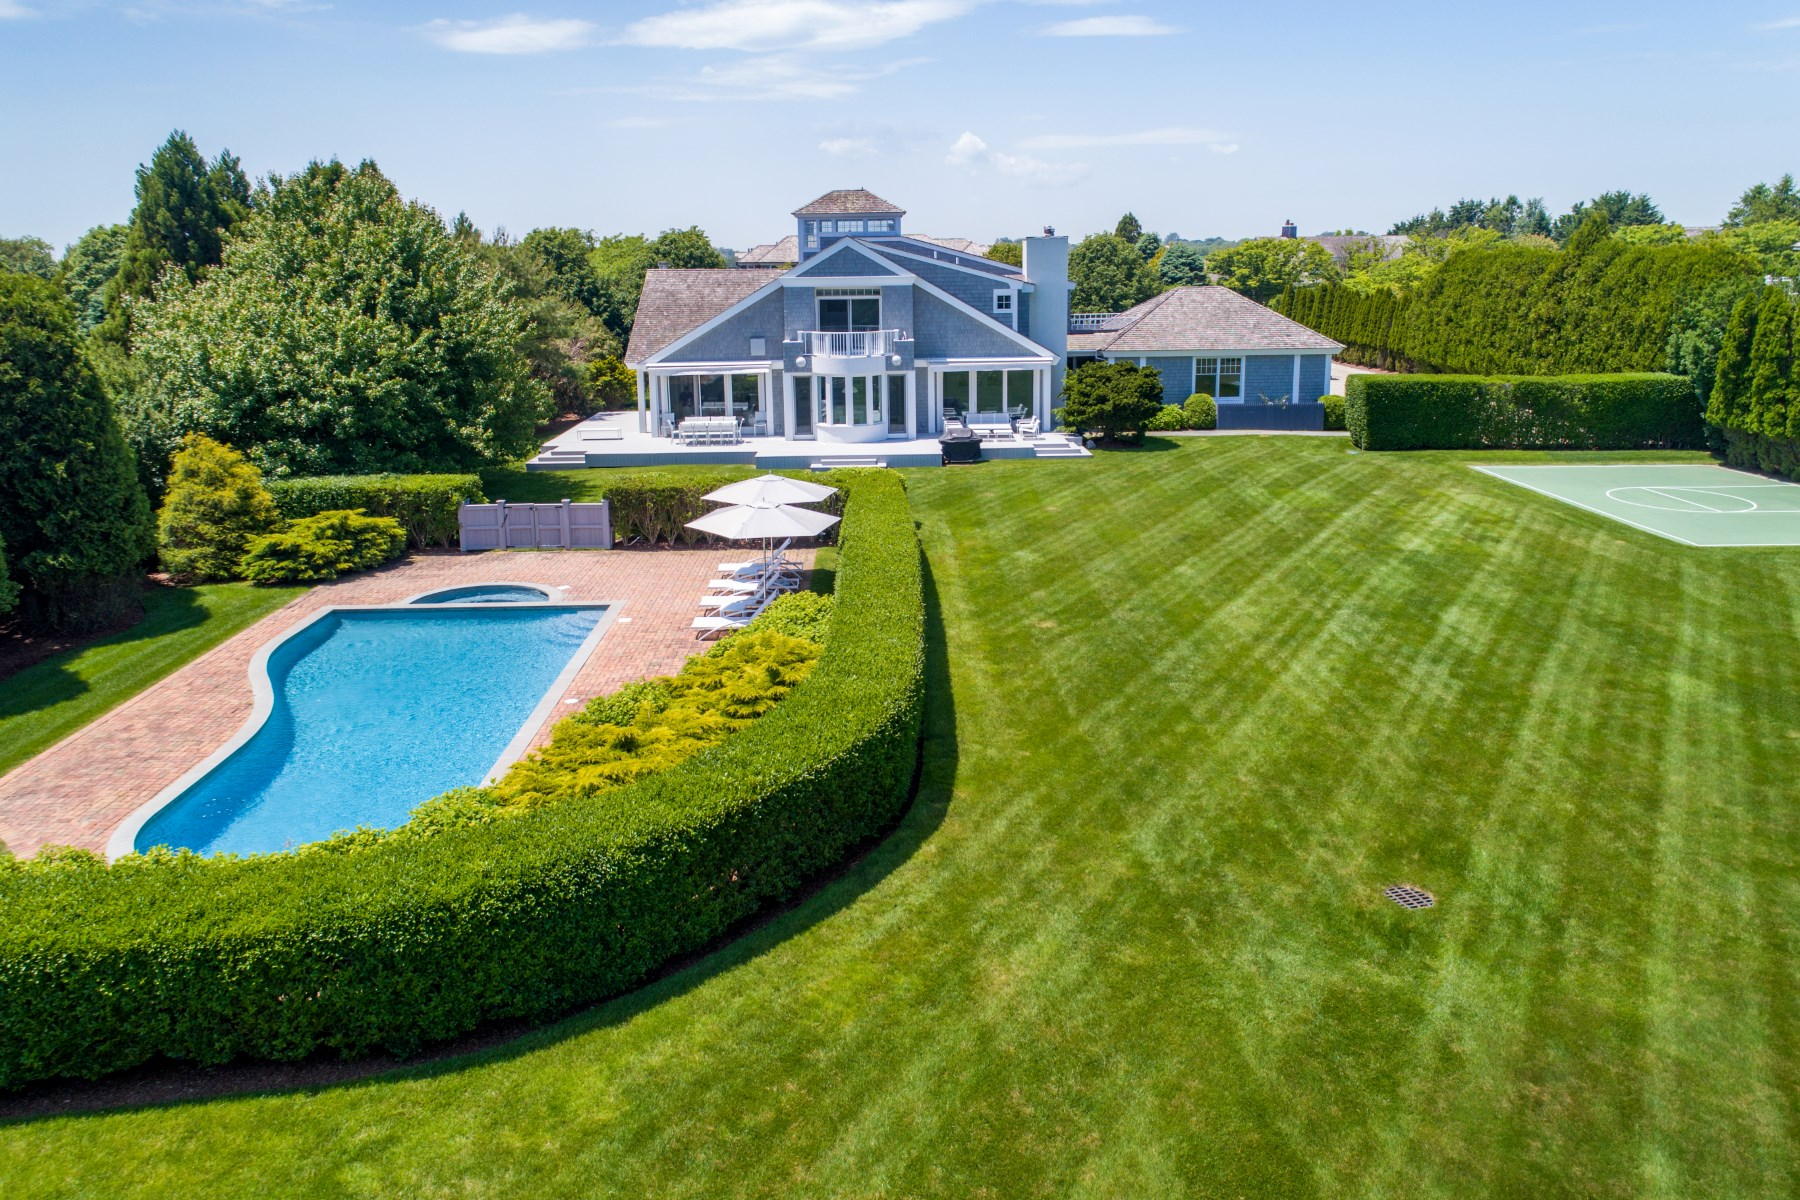 Single Family Home for Sale at Immaculate Sagaponack South Beach House 182 Ericas Lane Sagaponack, New York 11962